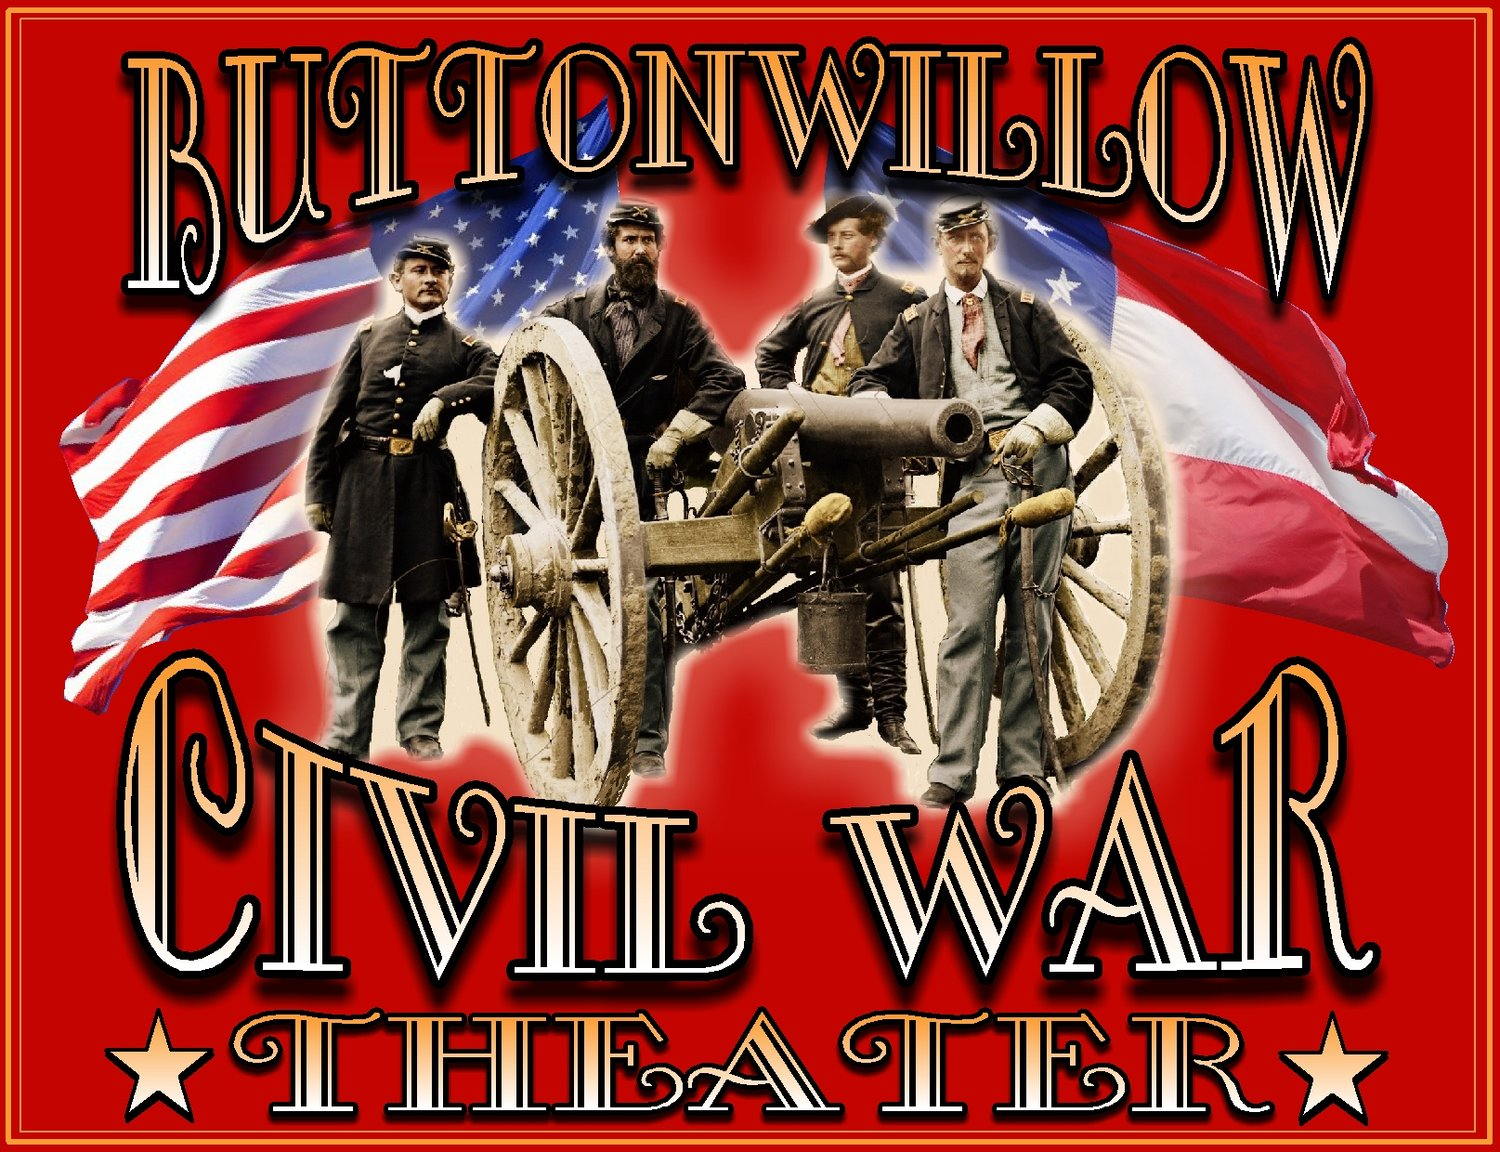 Buttonwillow Civil War Theater